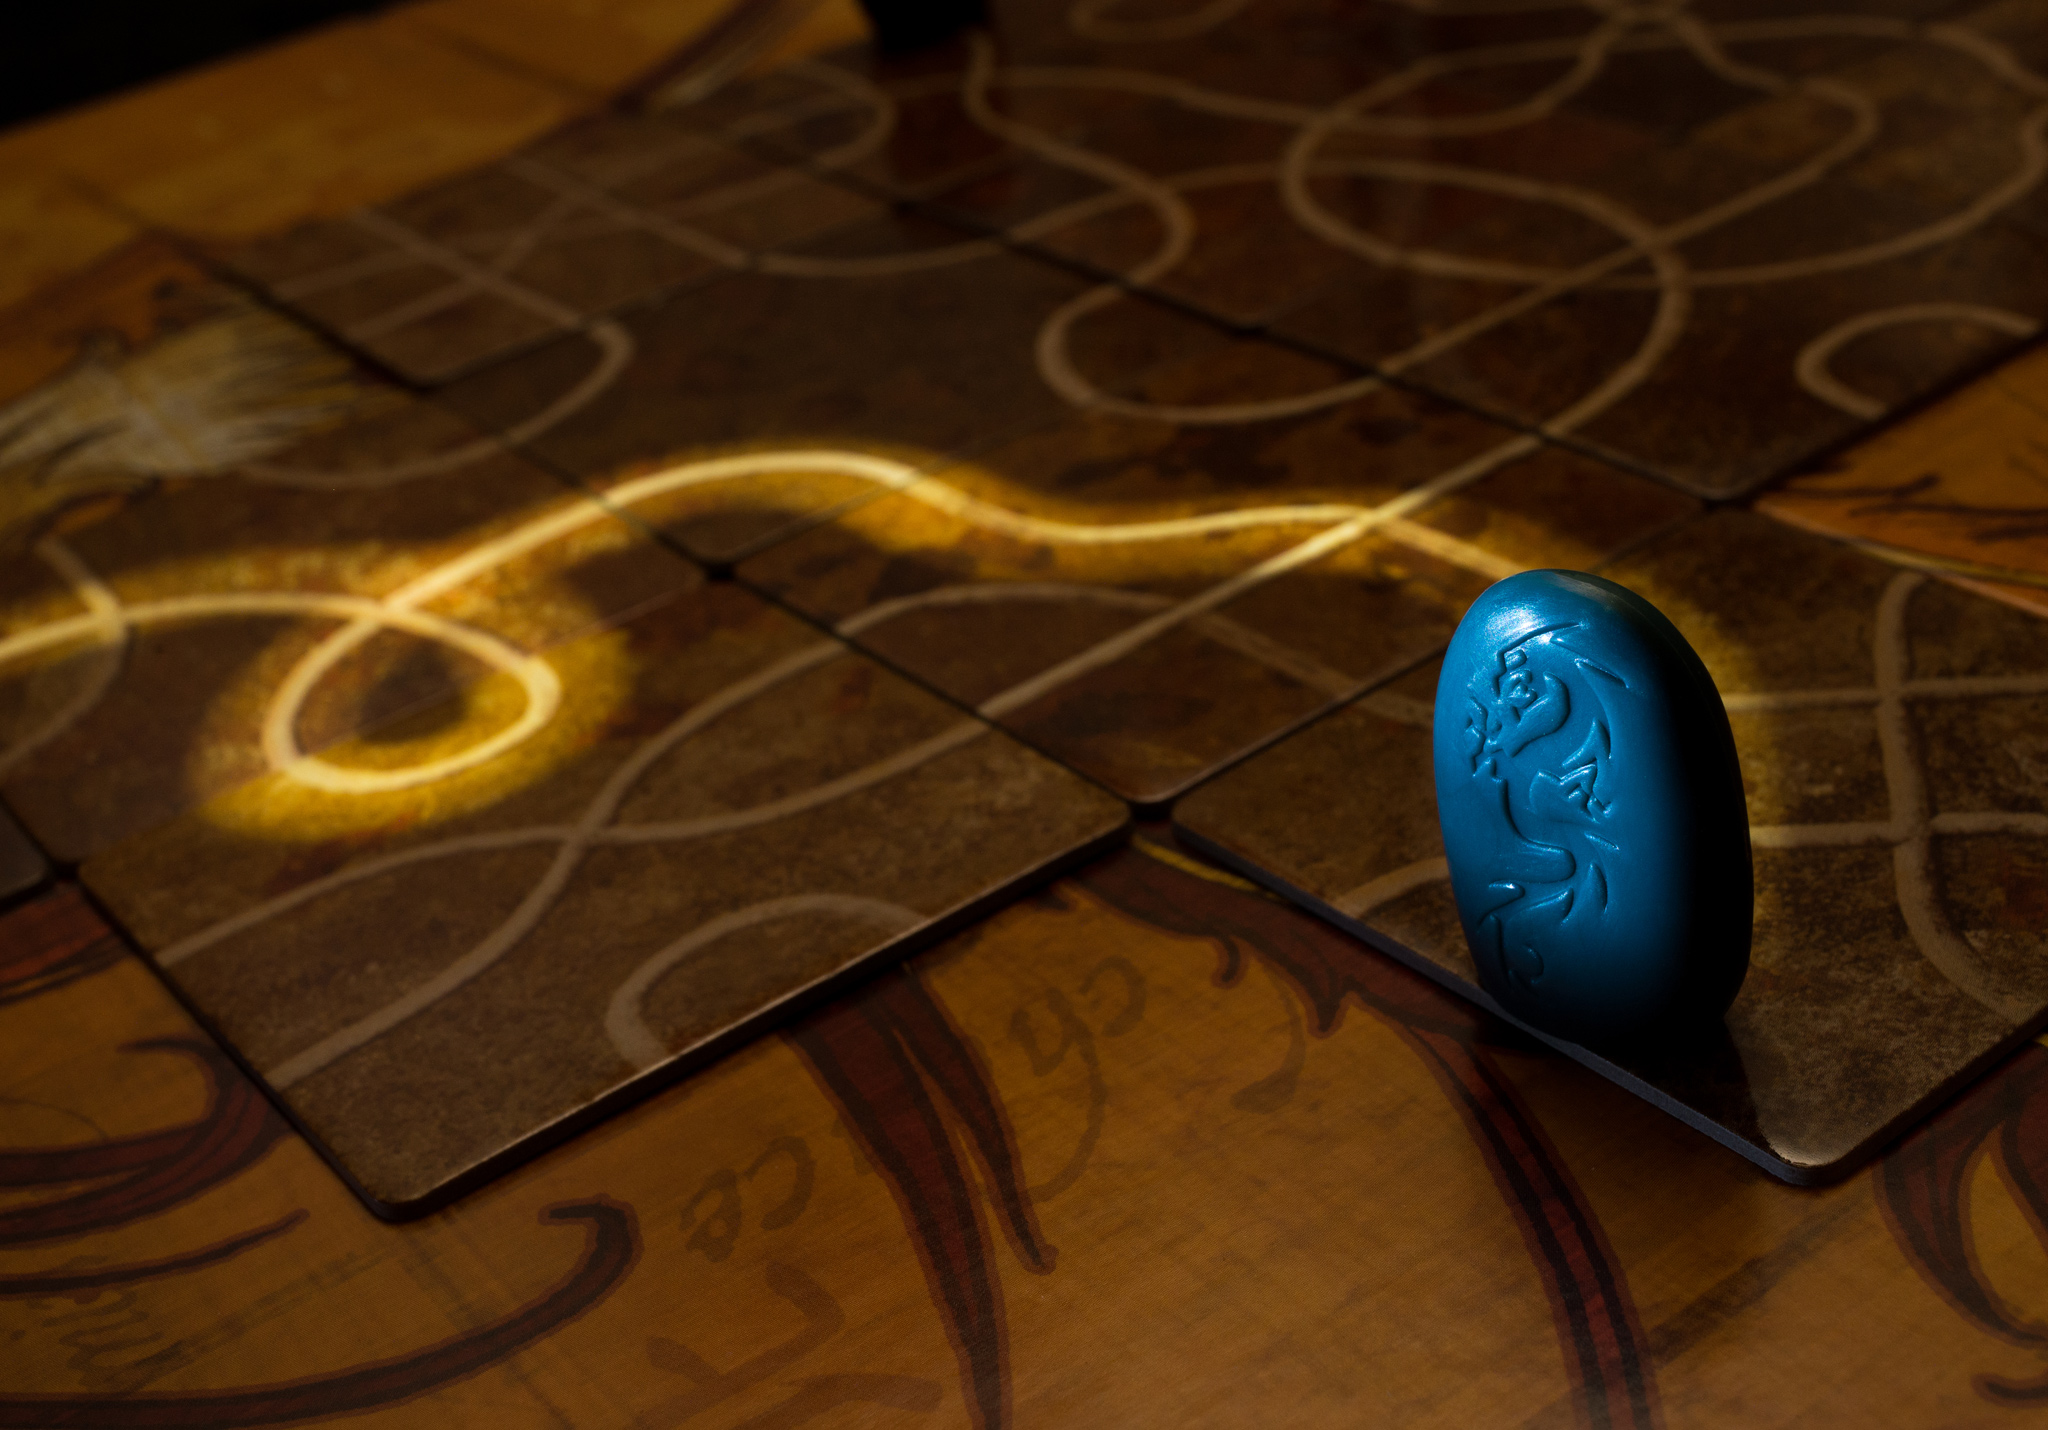 Tsuro tabletop tile-laying game